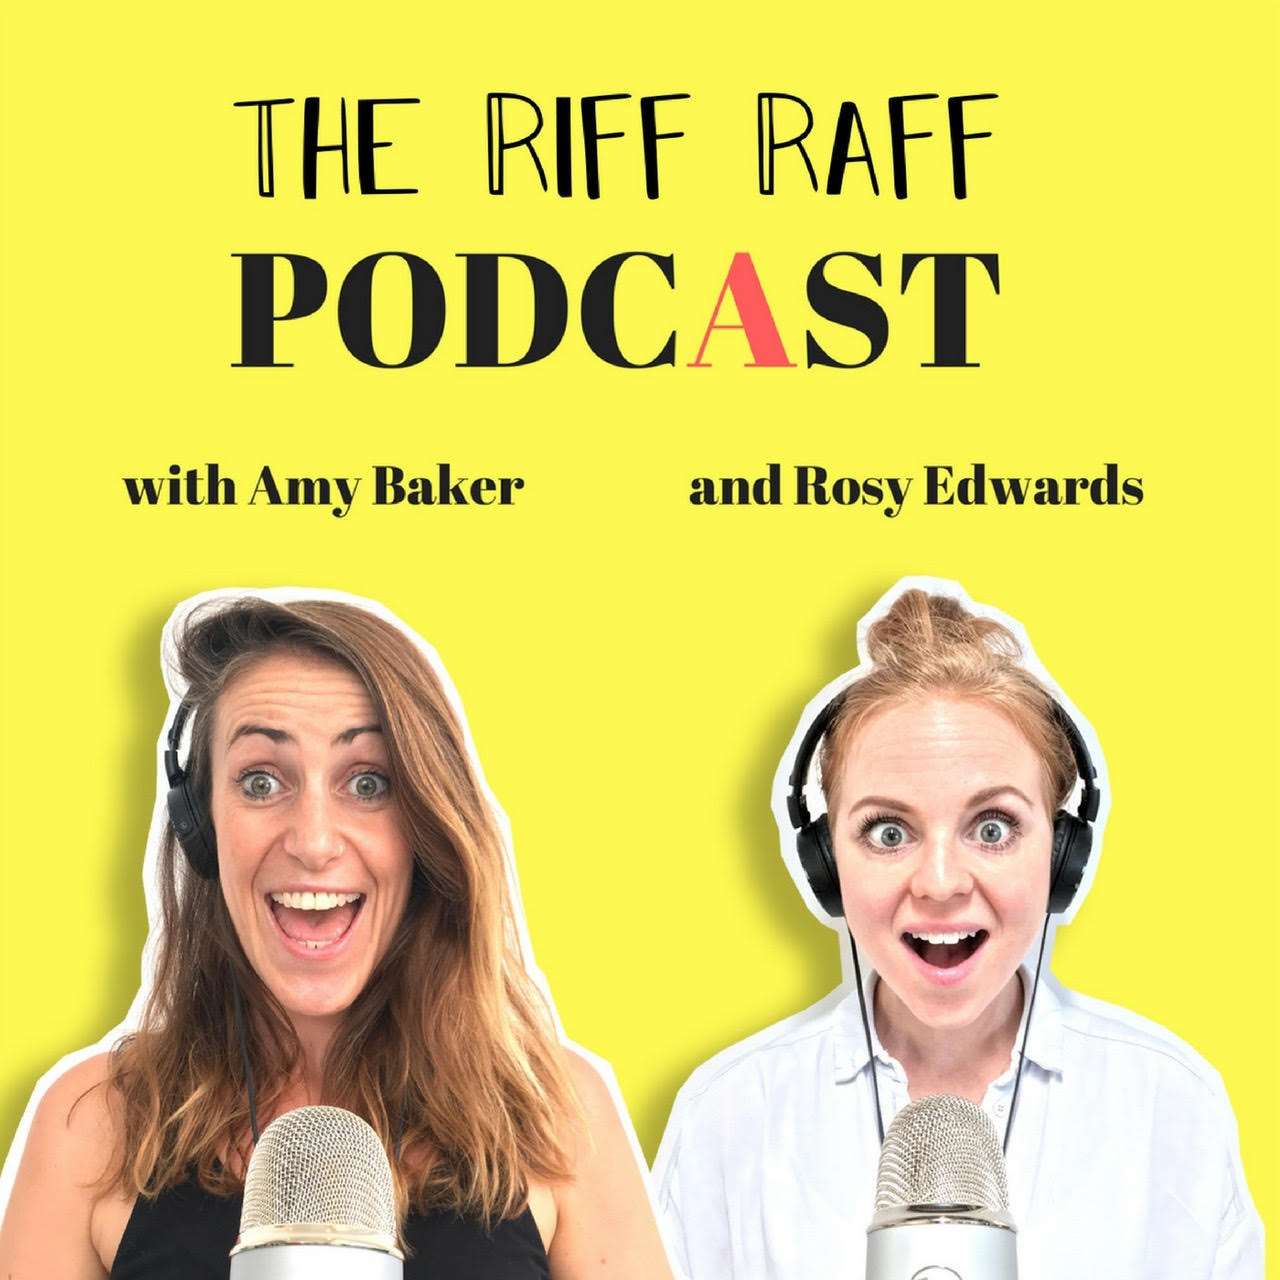 Amy Baker author The Riff Raff